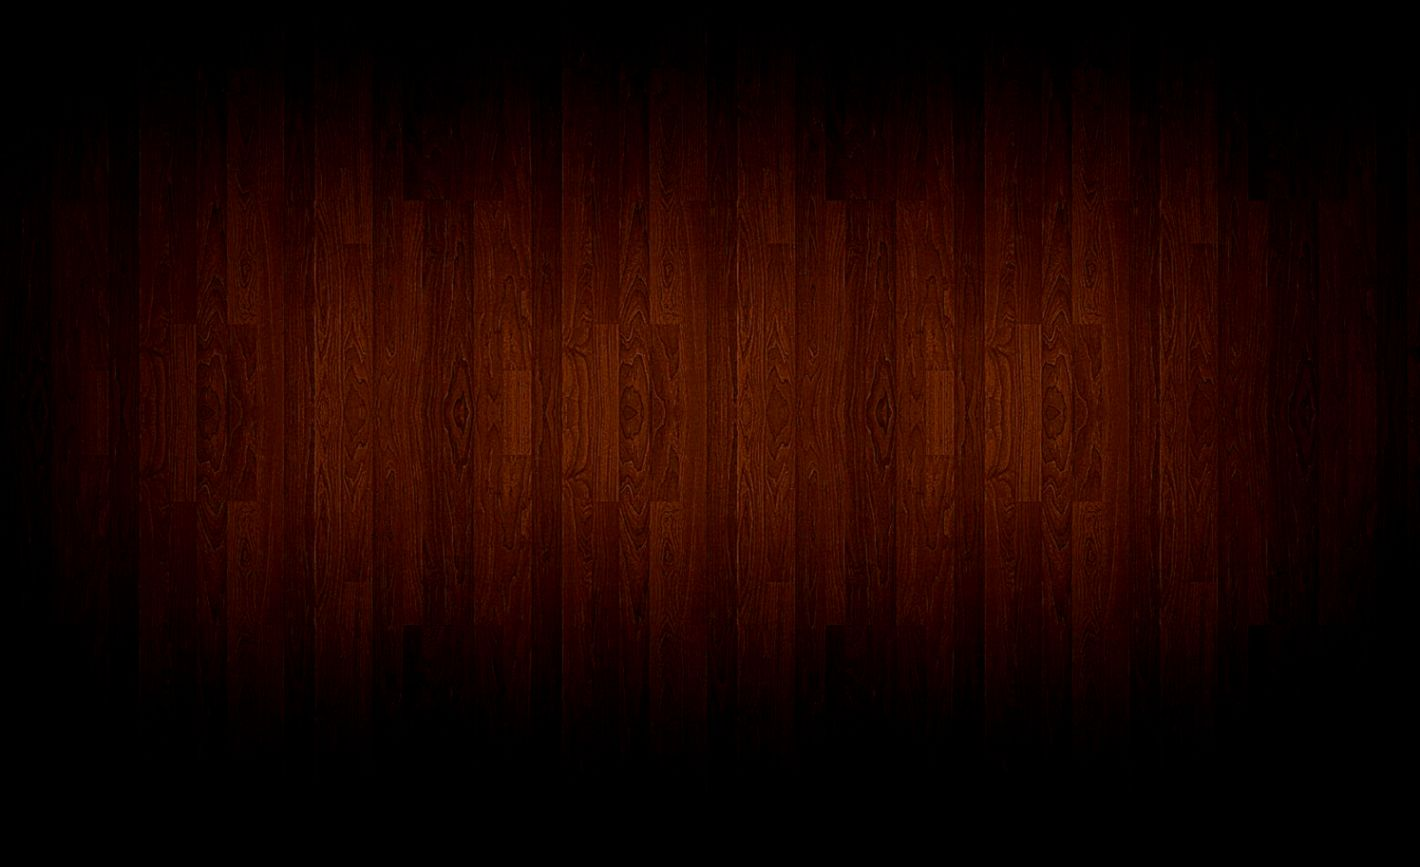 Android Full Colour Dark Hd Wallpaper   High Definitions Wallpapers View Original Size